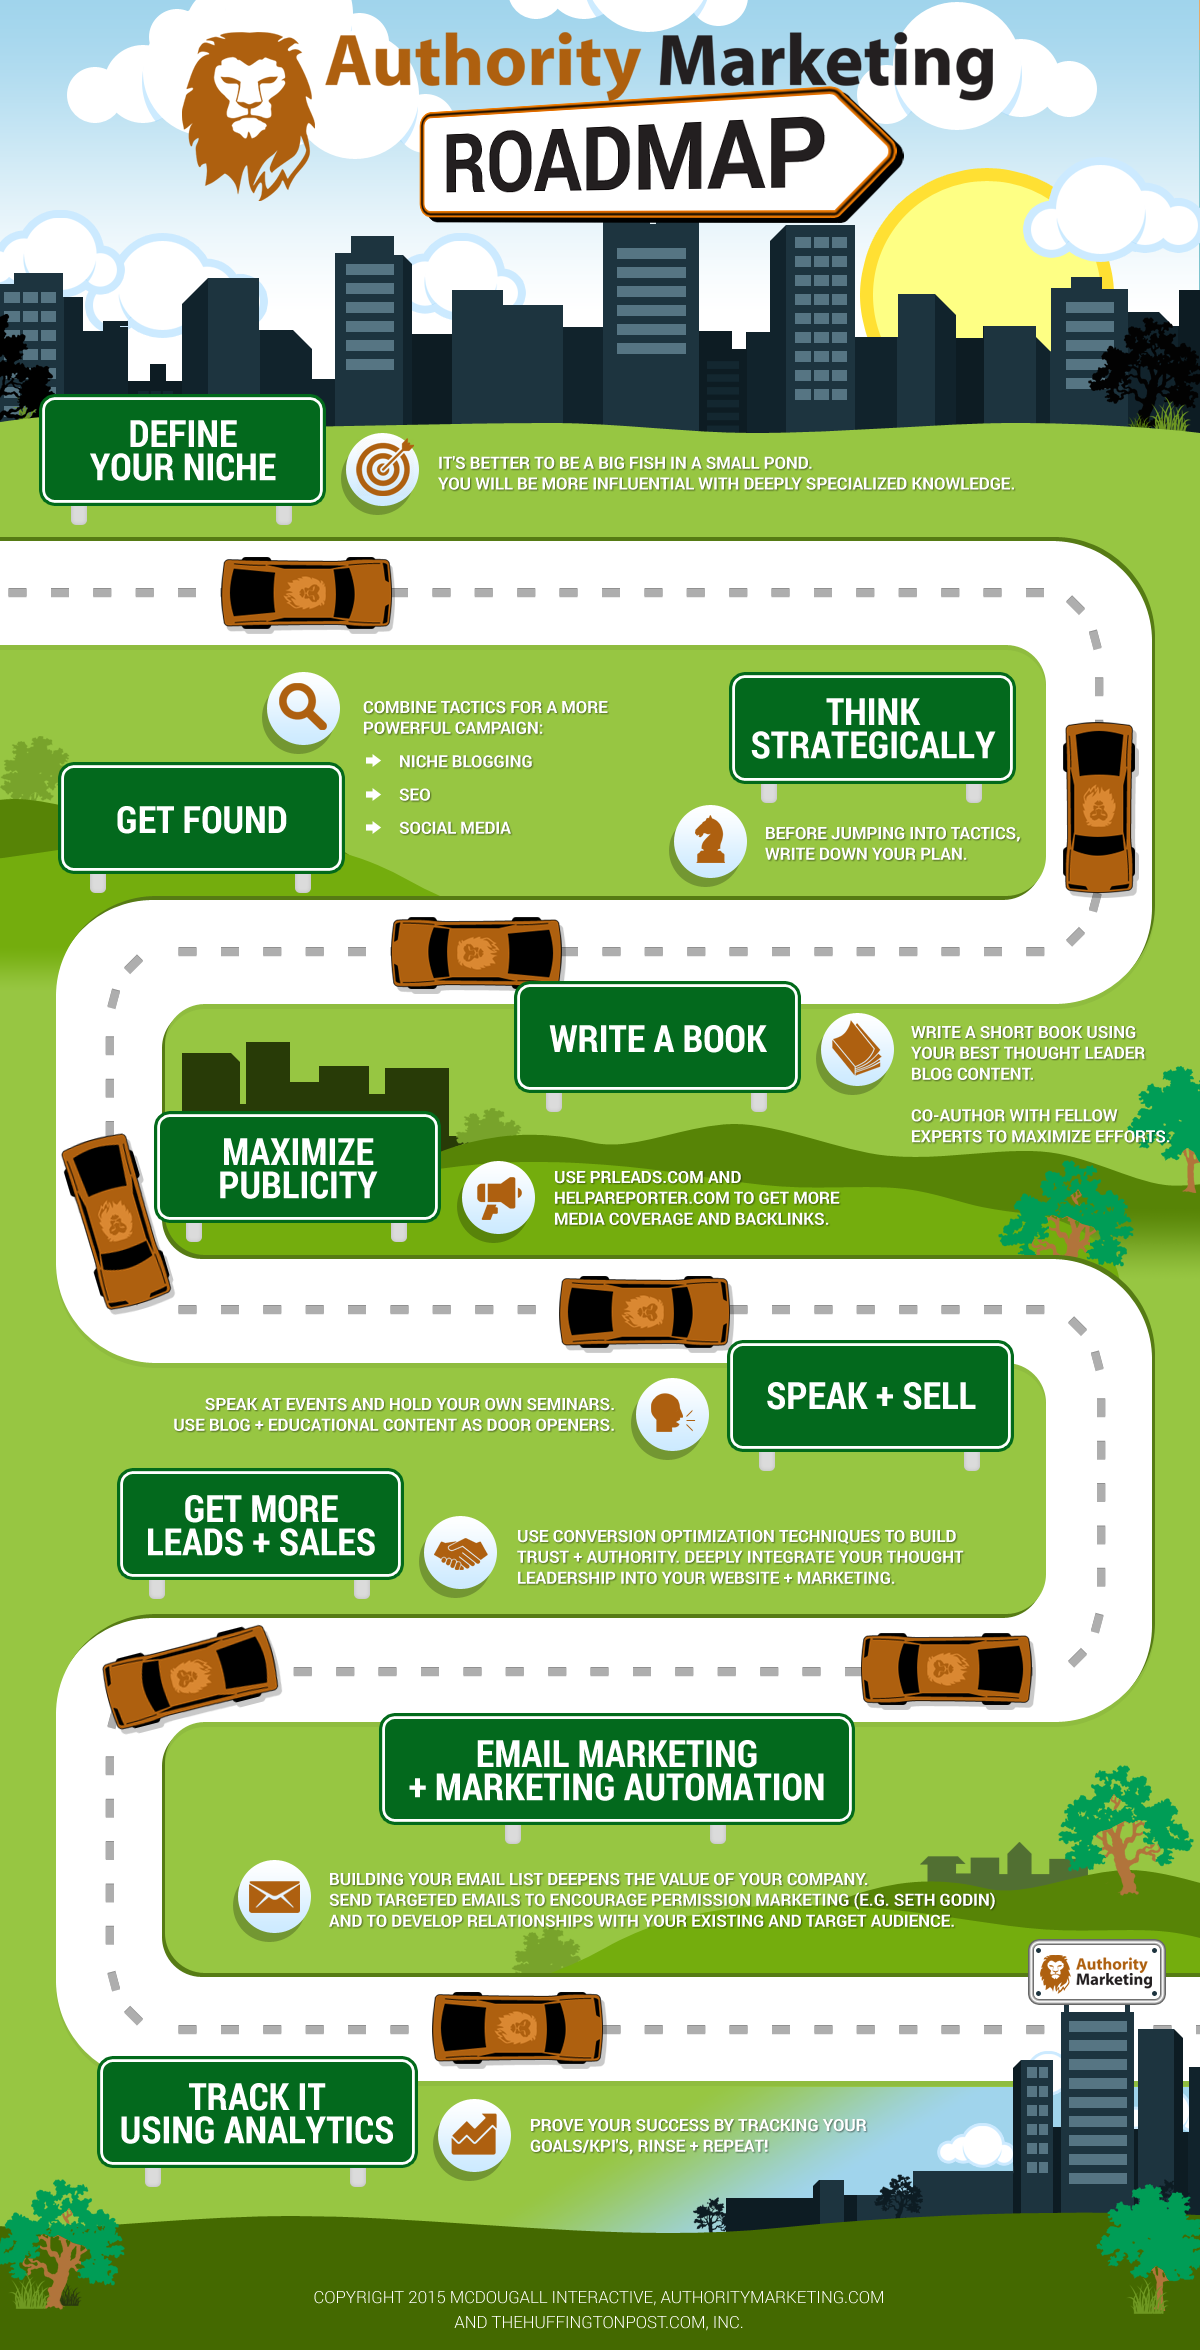 9Step Authority Marketing Roadmap [Infographic